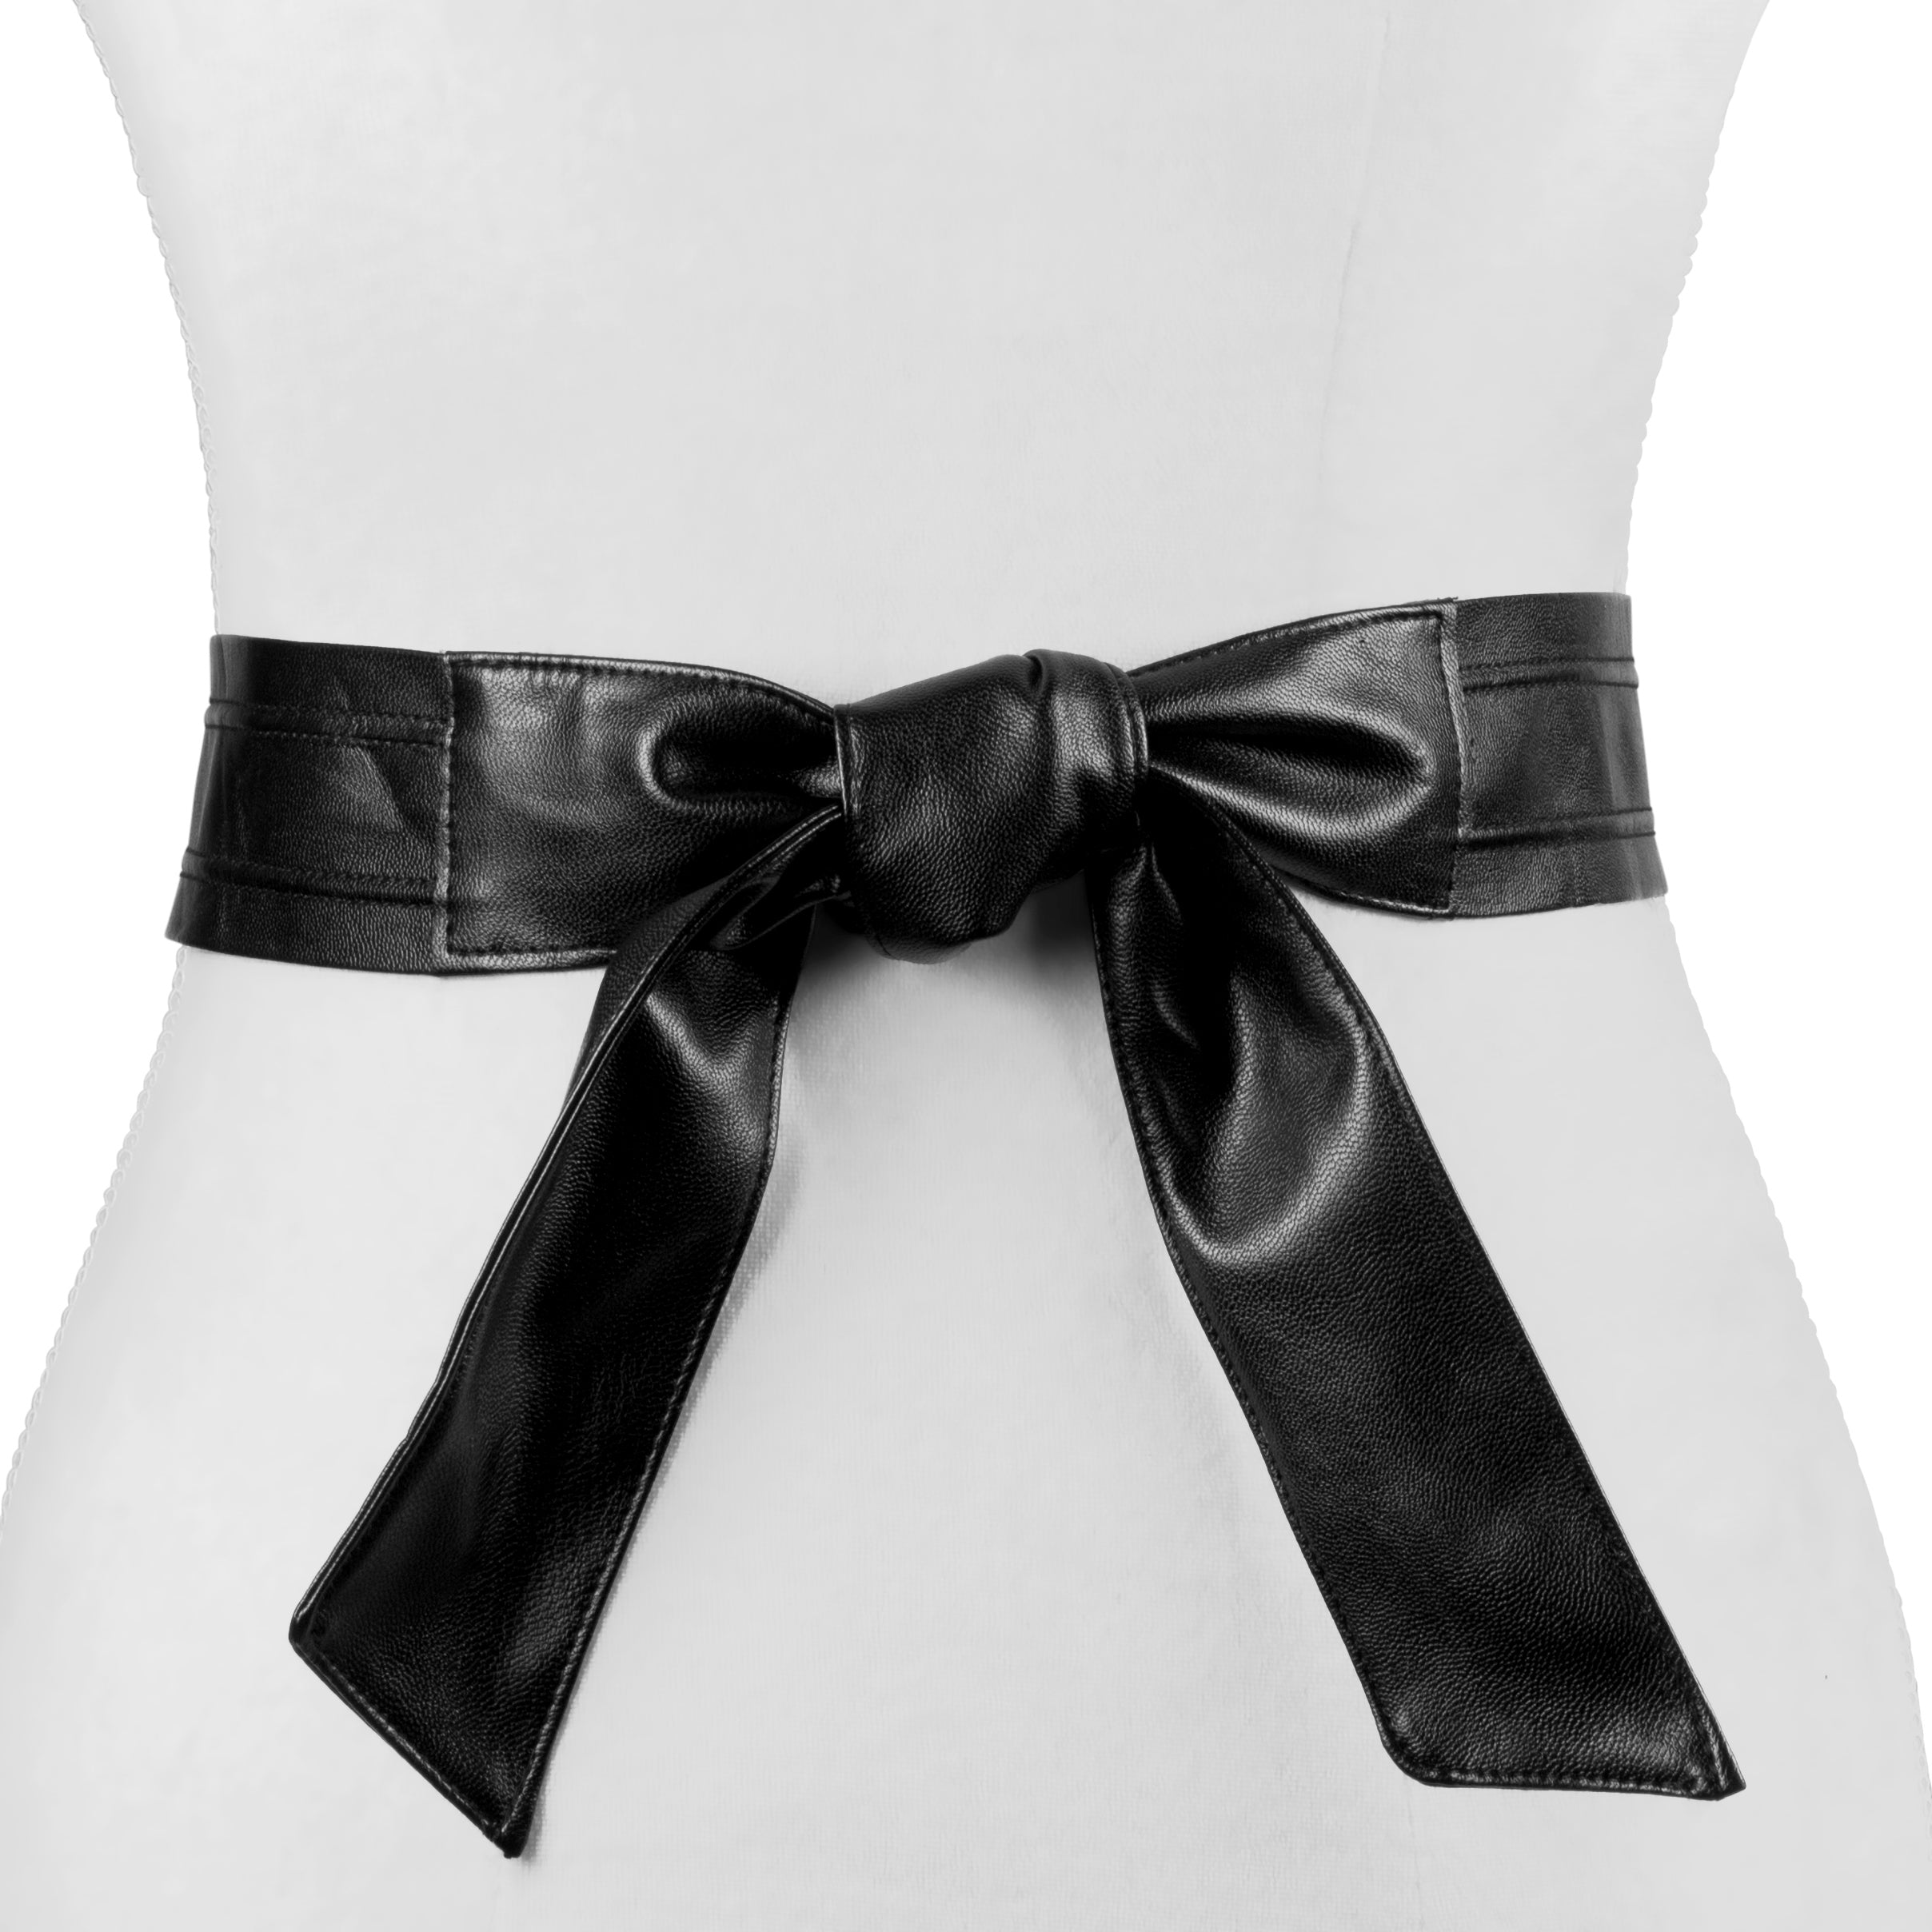 Welt Wrap Belt - Two 12 Fashion